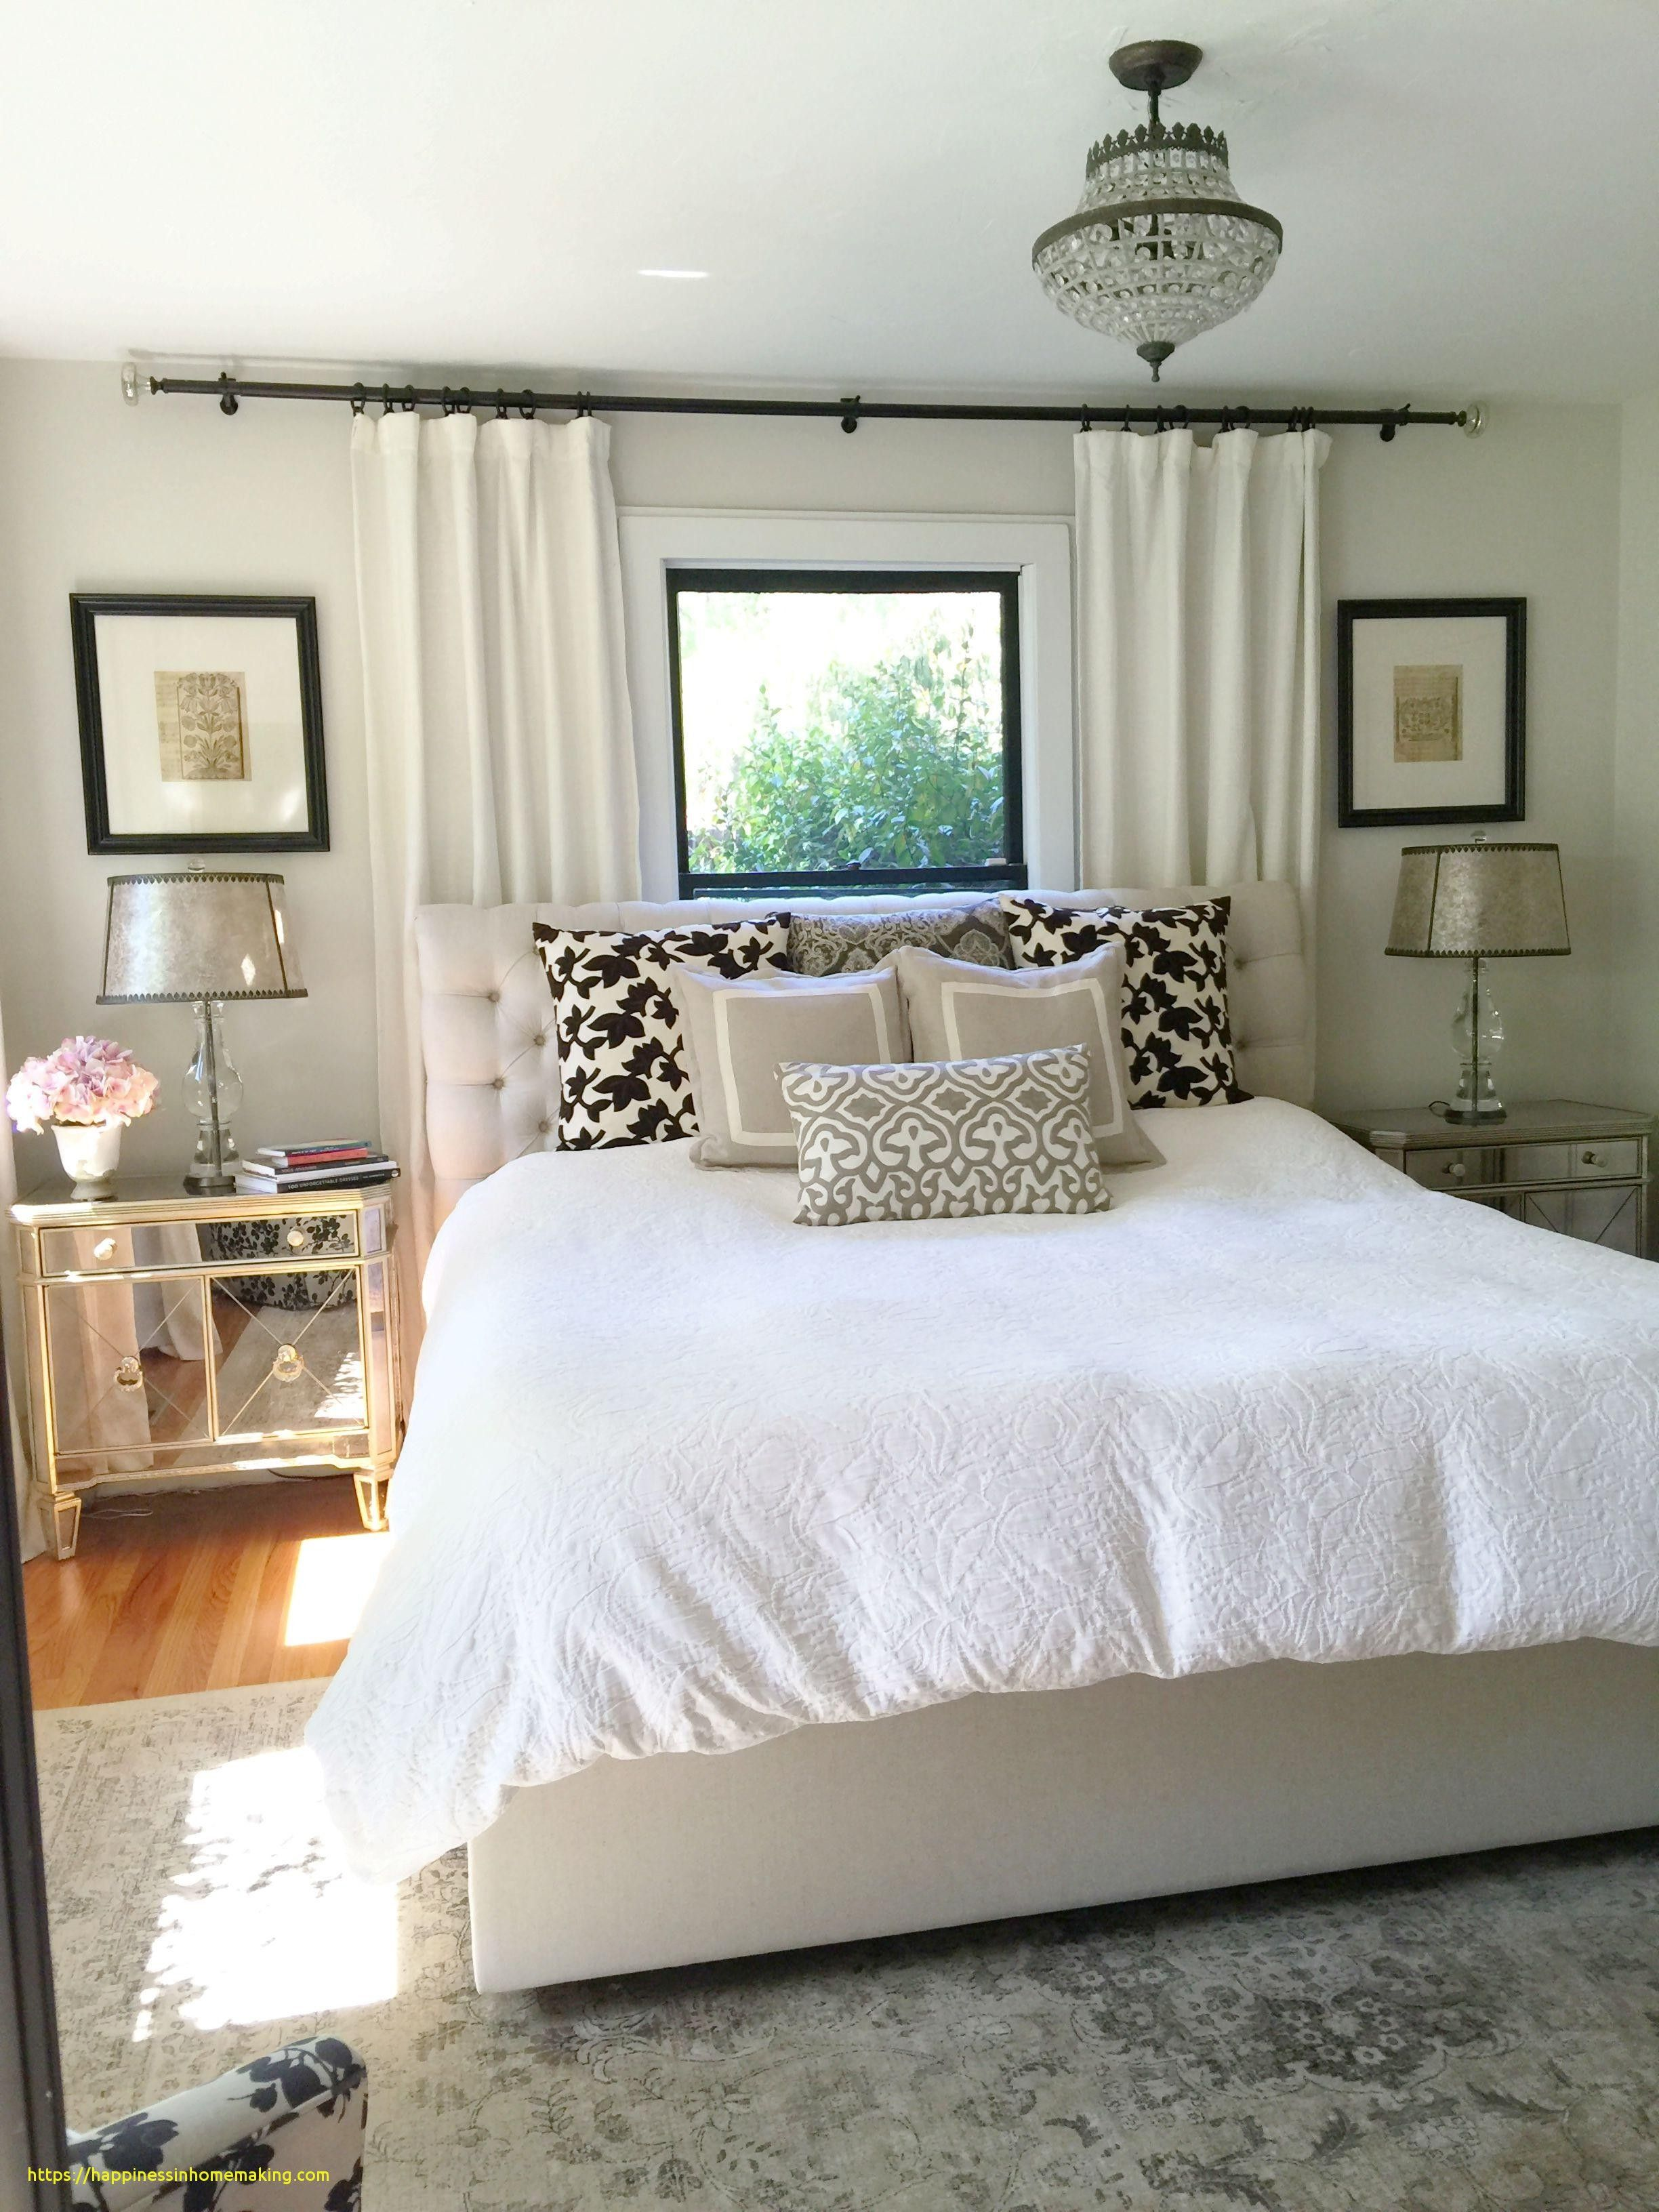 Bed with window behind it  full size of furniture bedroom drapes beautiful neutral bedroom